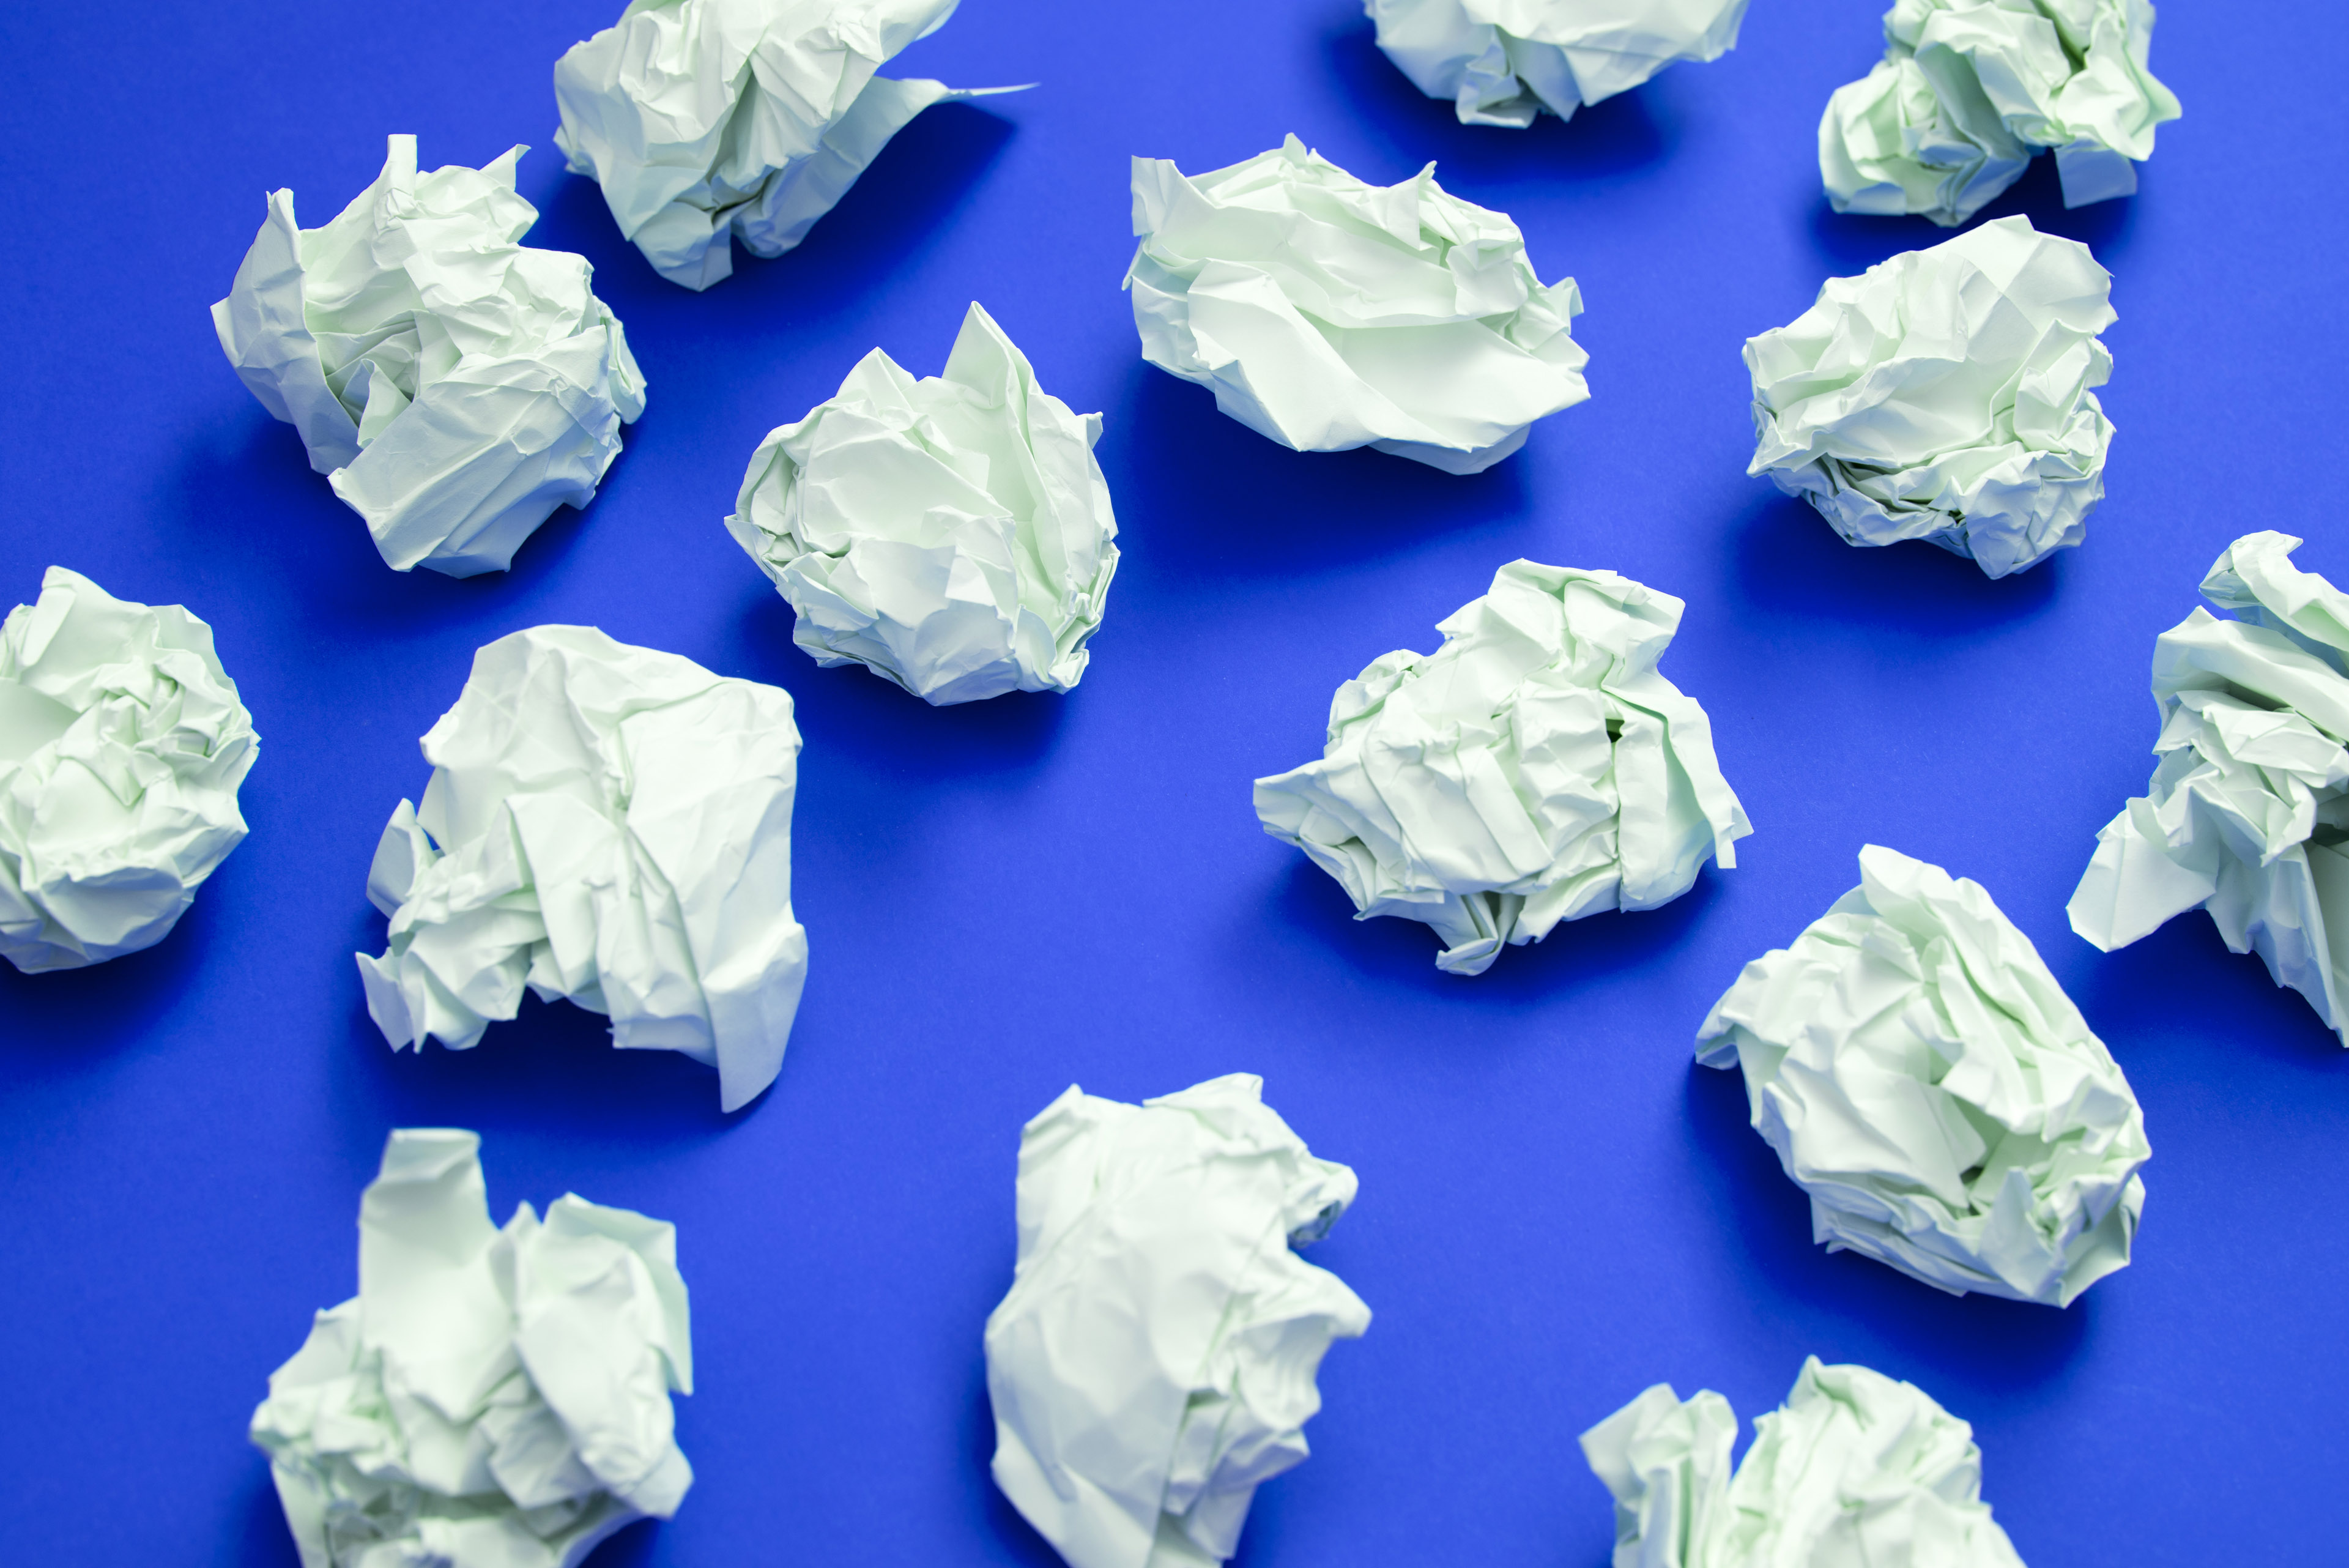 Writers block concept or business impasse with scattered balls of crumpled white paper with discarded ideas on a blue background viewed from above